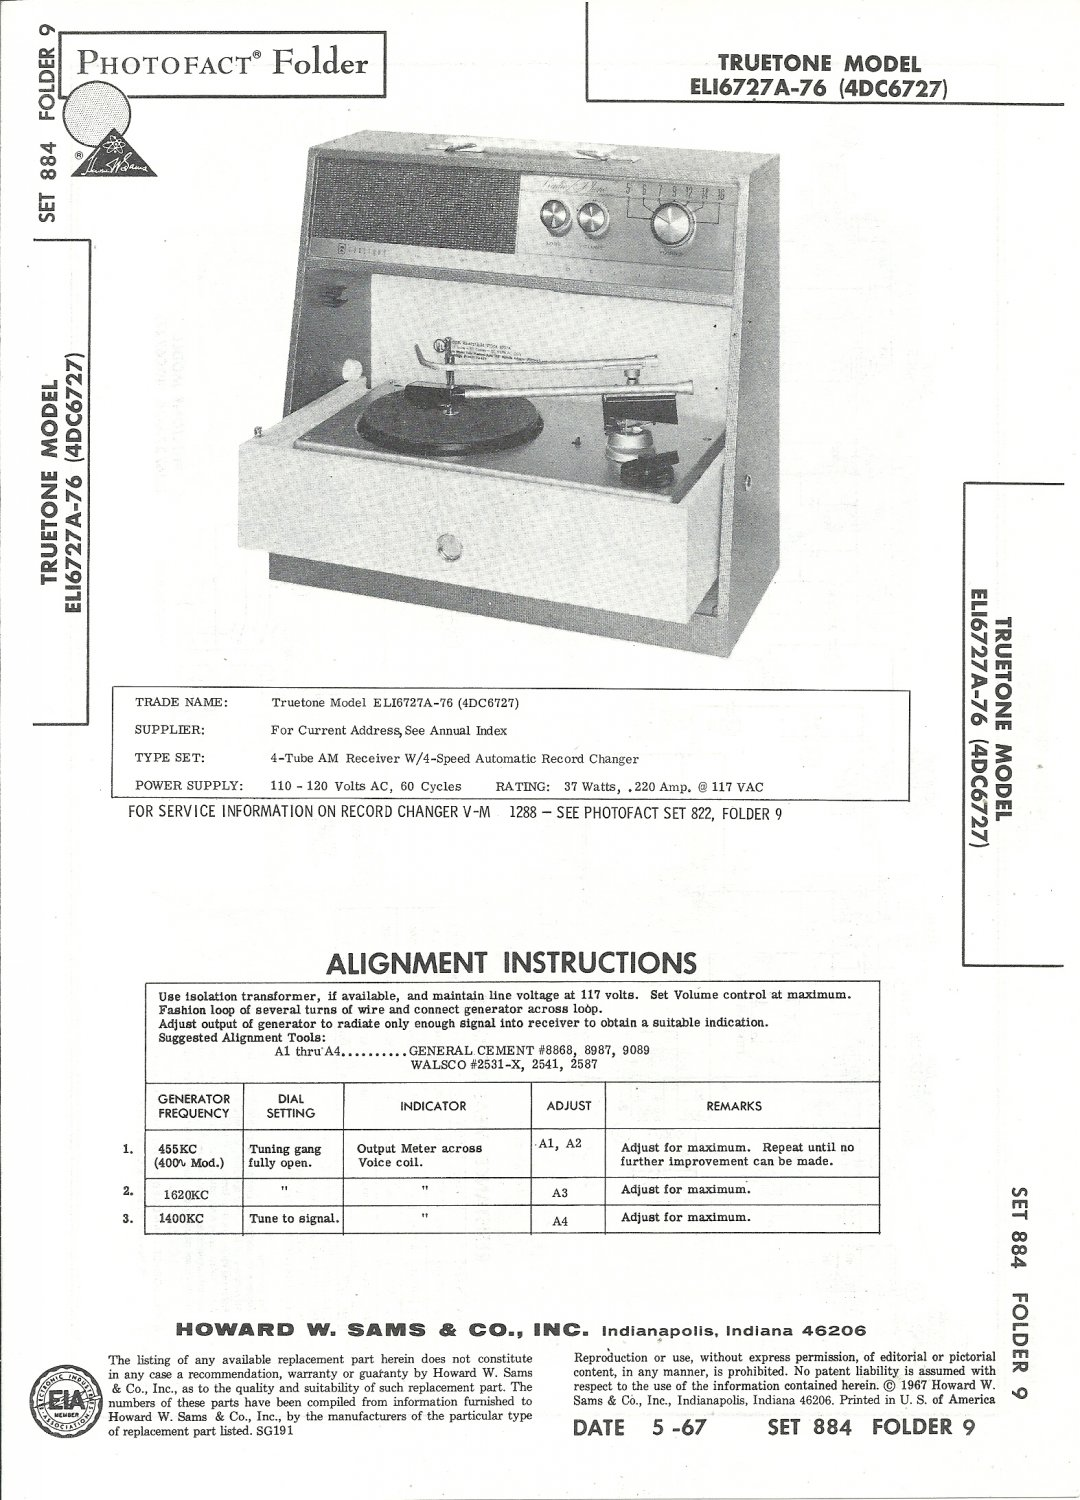 SAMS Photofact - Set 884 - Folder 9 - May 1967 - TRUETONE MODEL ELI6727A-76 (4DC6727)